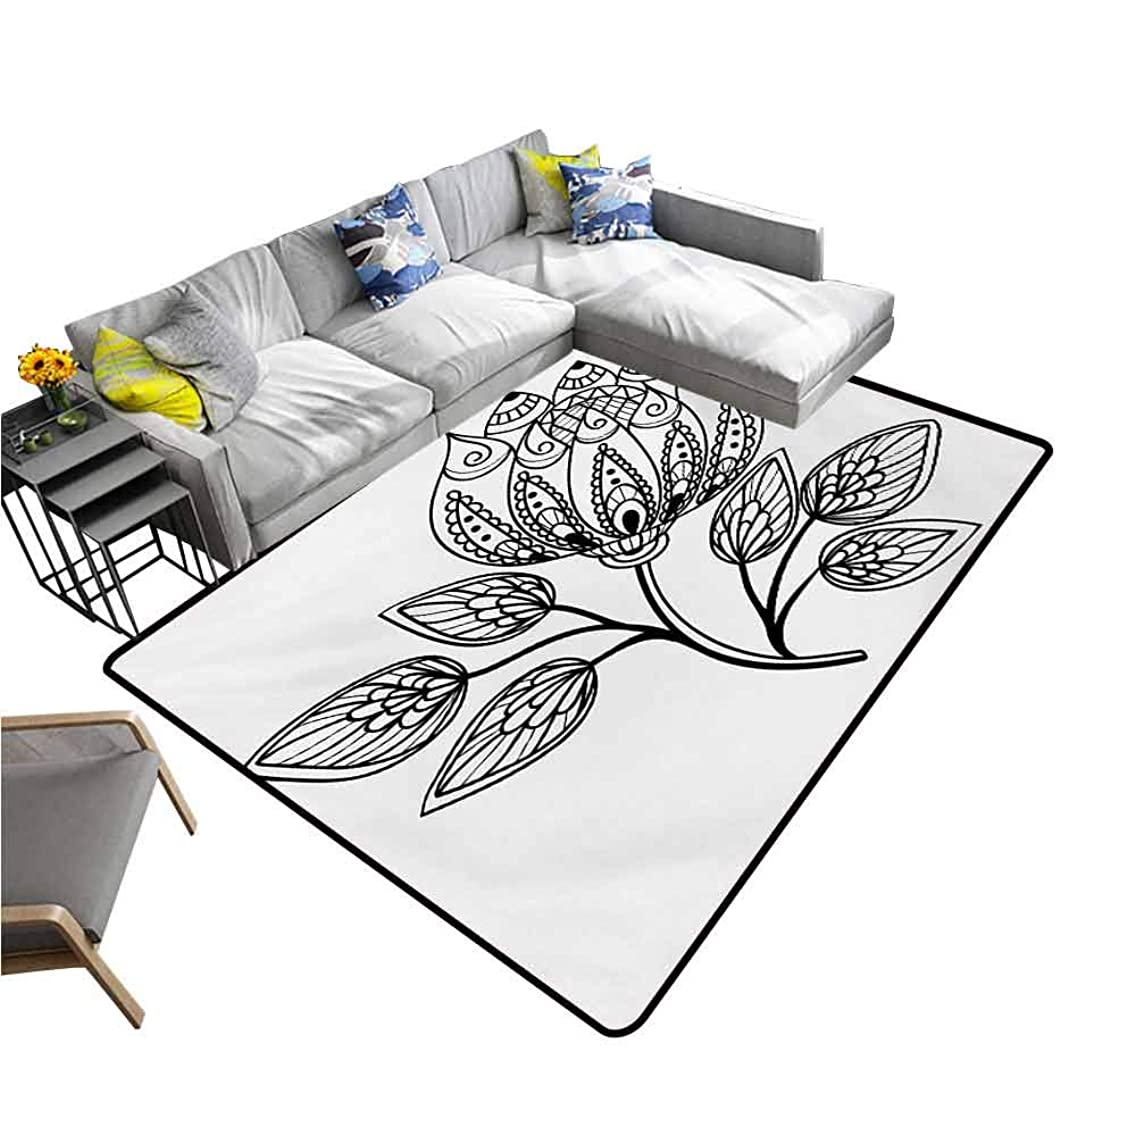 Front Mat Home Decorative Carpet Colorful Henna,Hand Drawn Monochrome Floral Pattern with Ornamental Petals and Leaves Swirls Curves,Black White 60